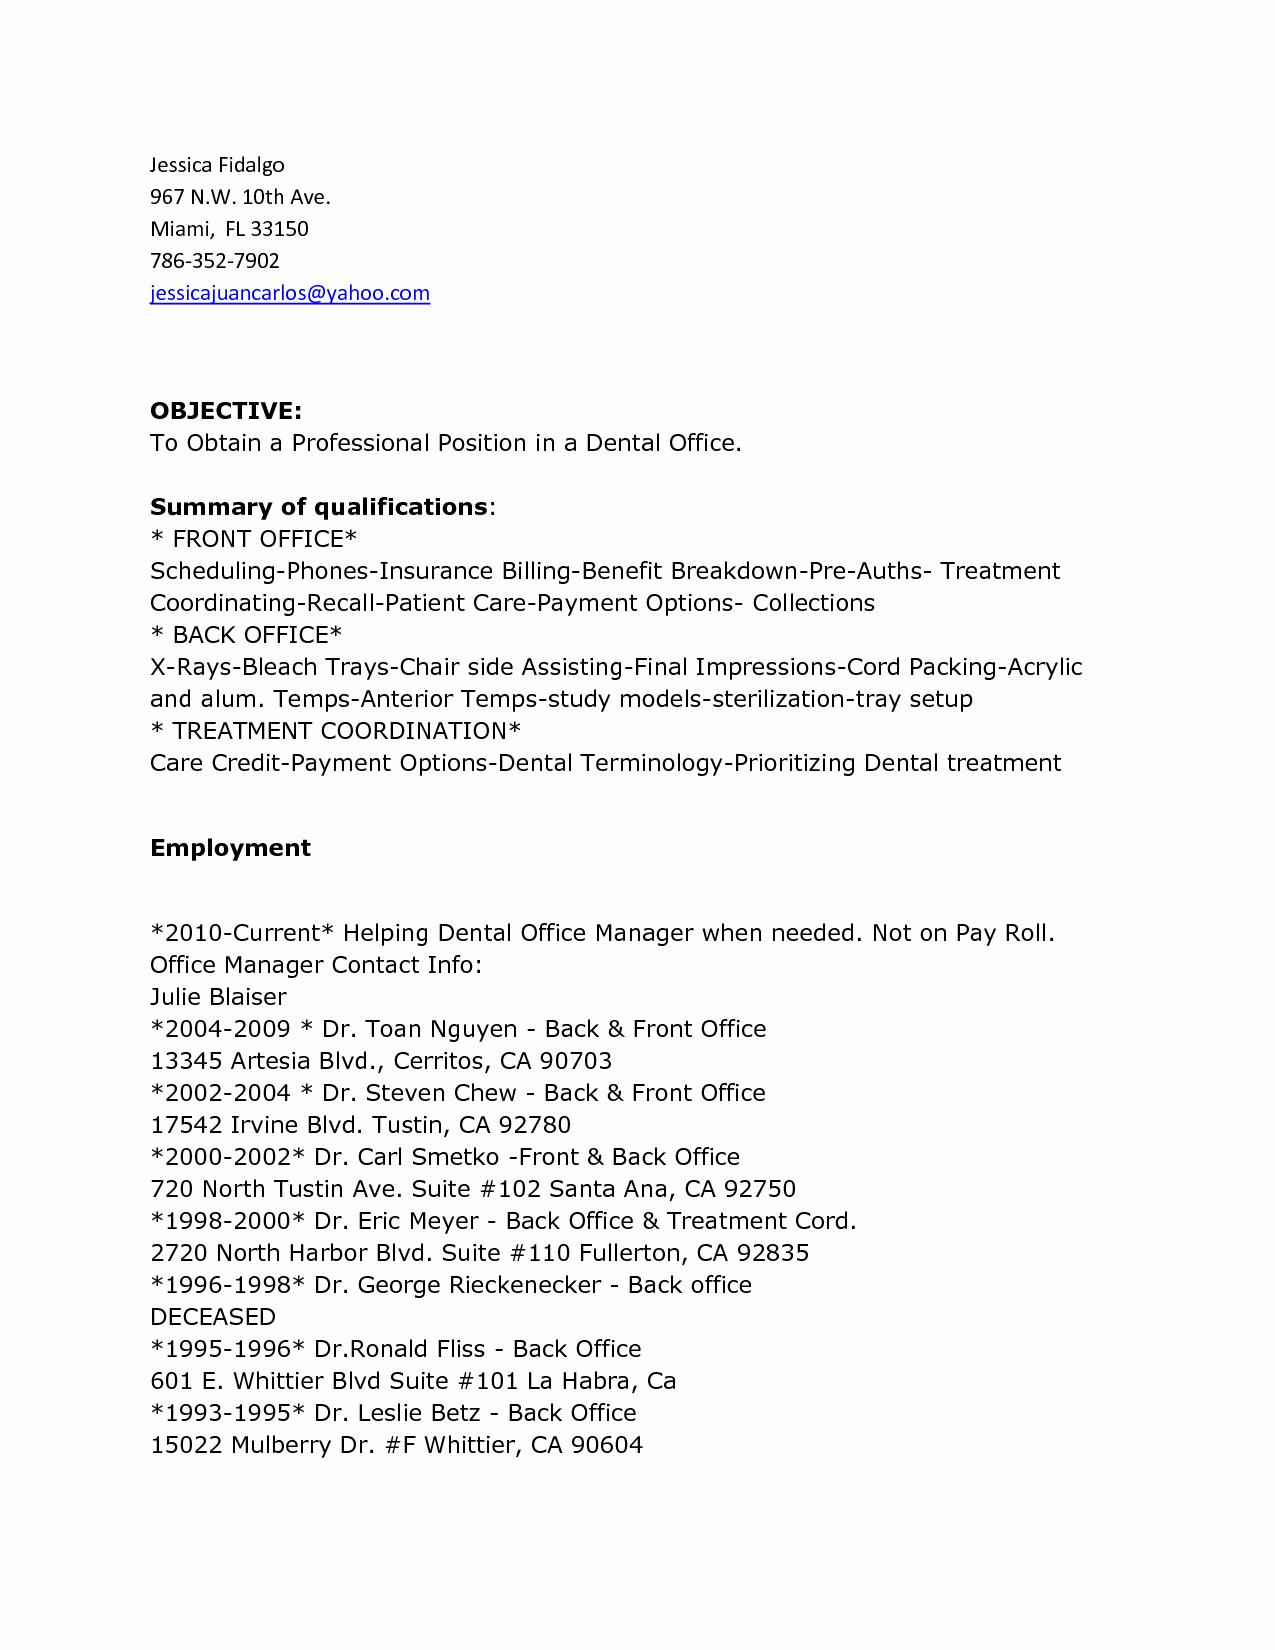 Best S Of Fice Clerk Resume Templates General